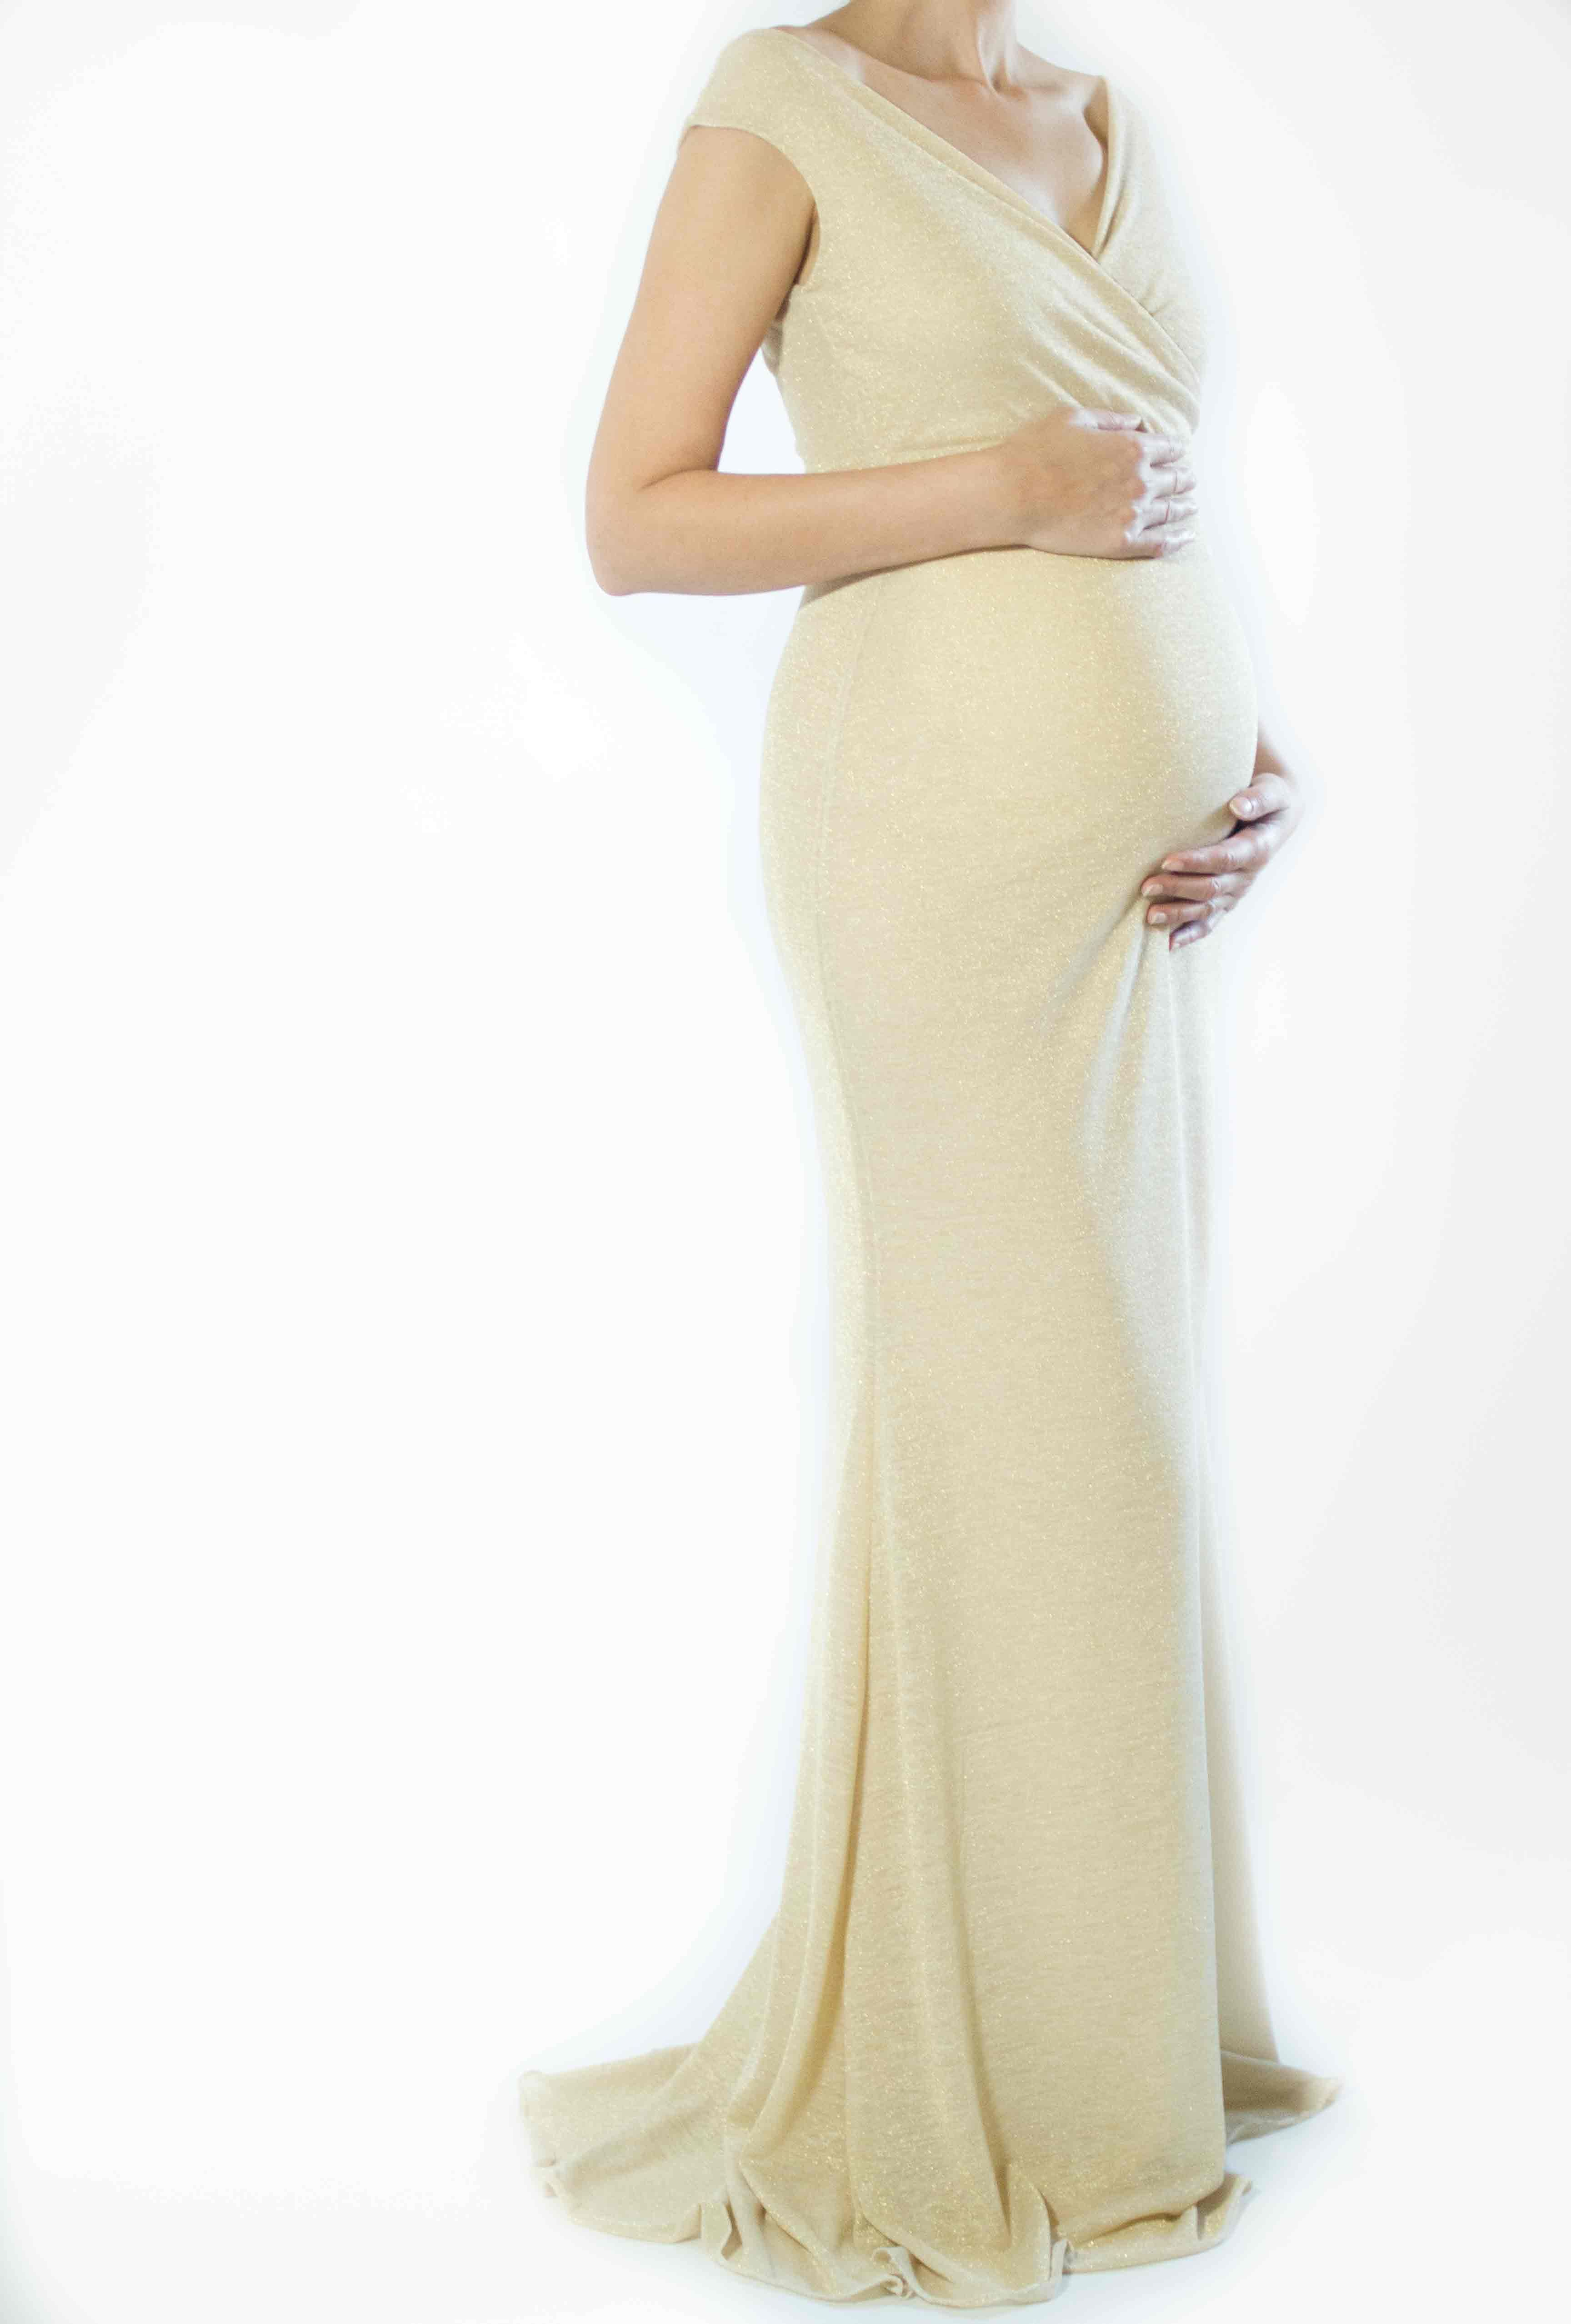 Gold Maternity Holiday Evening Dress, Holiday Evening Gown, New ...